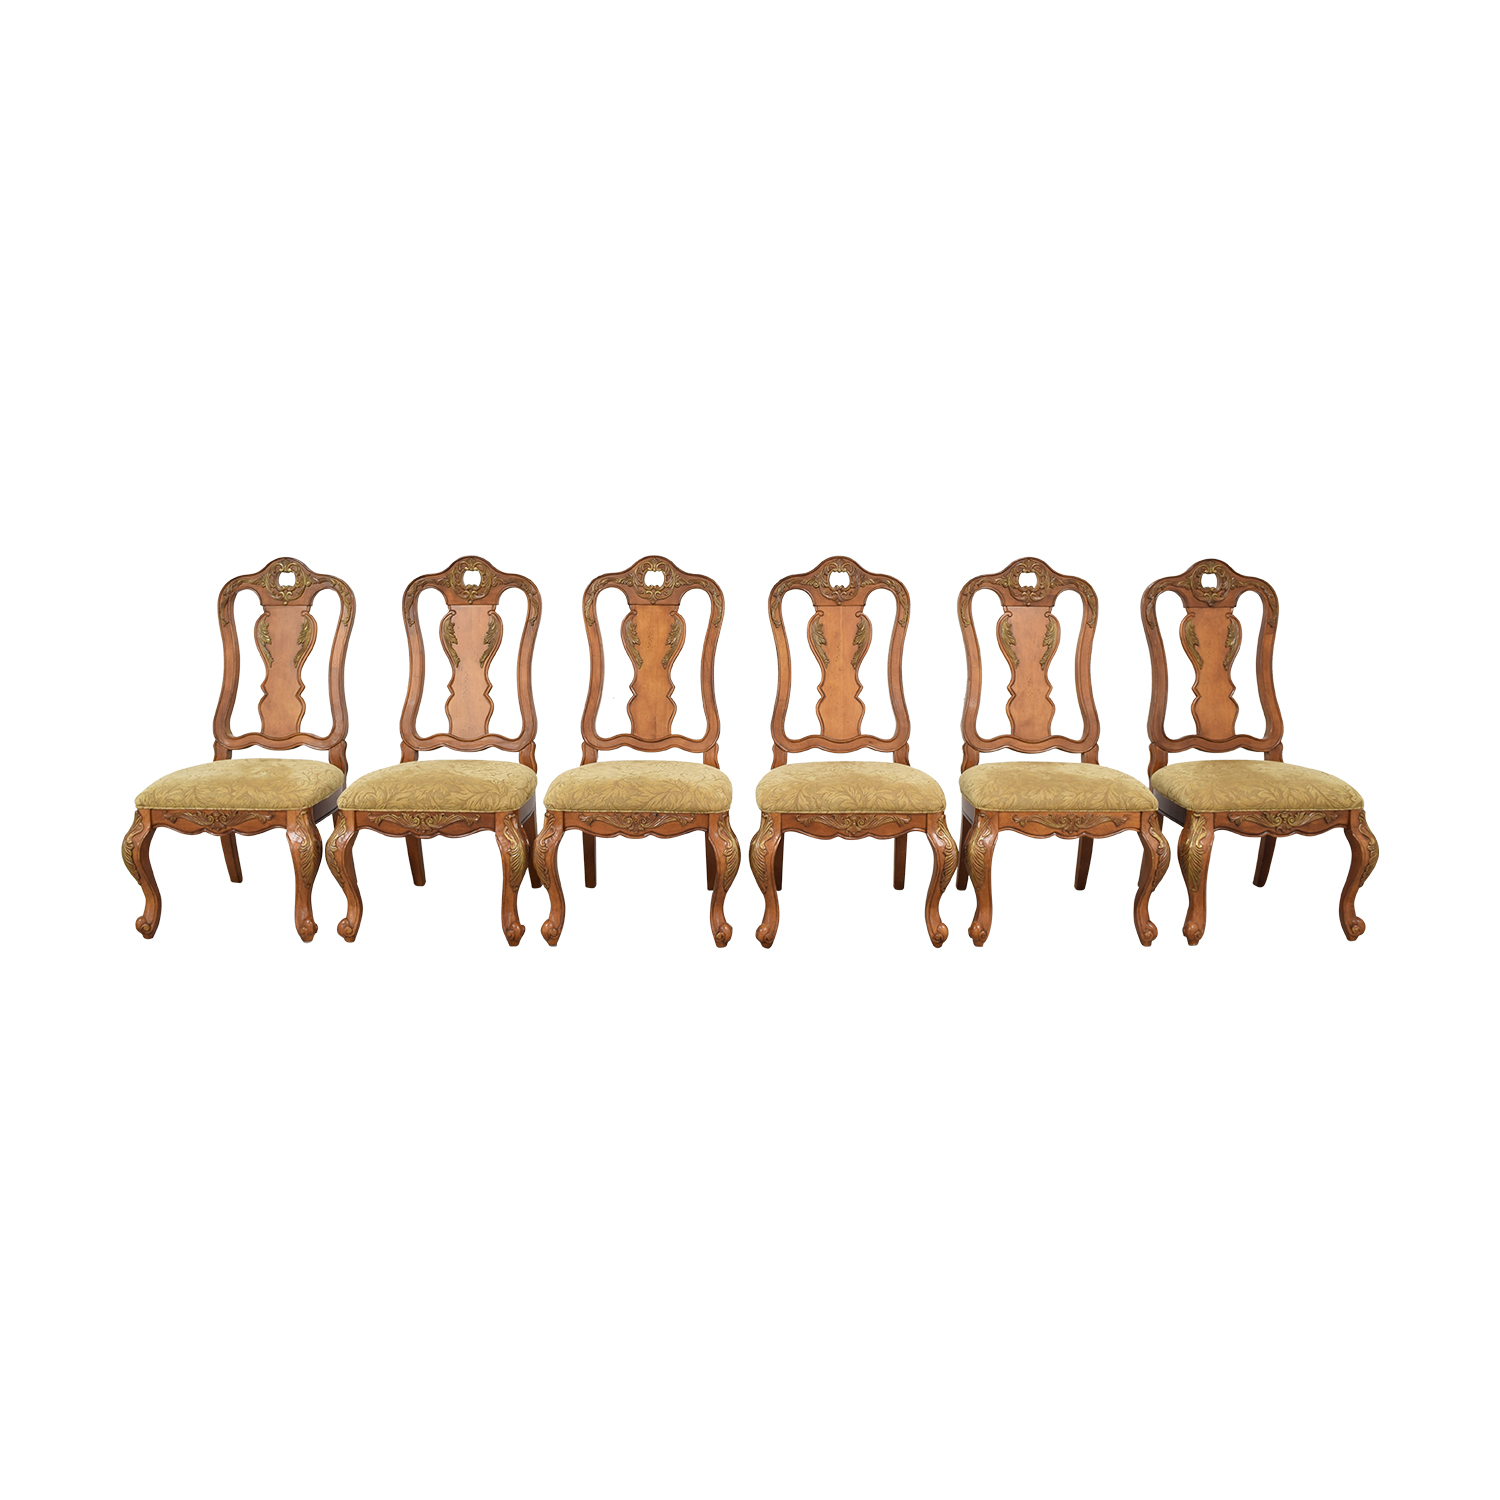 buy Raymour & Flanigan Raymour & Flanigan Carved Dining Chairs online